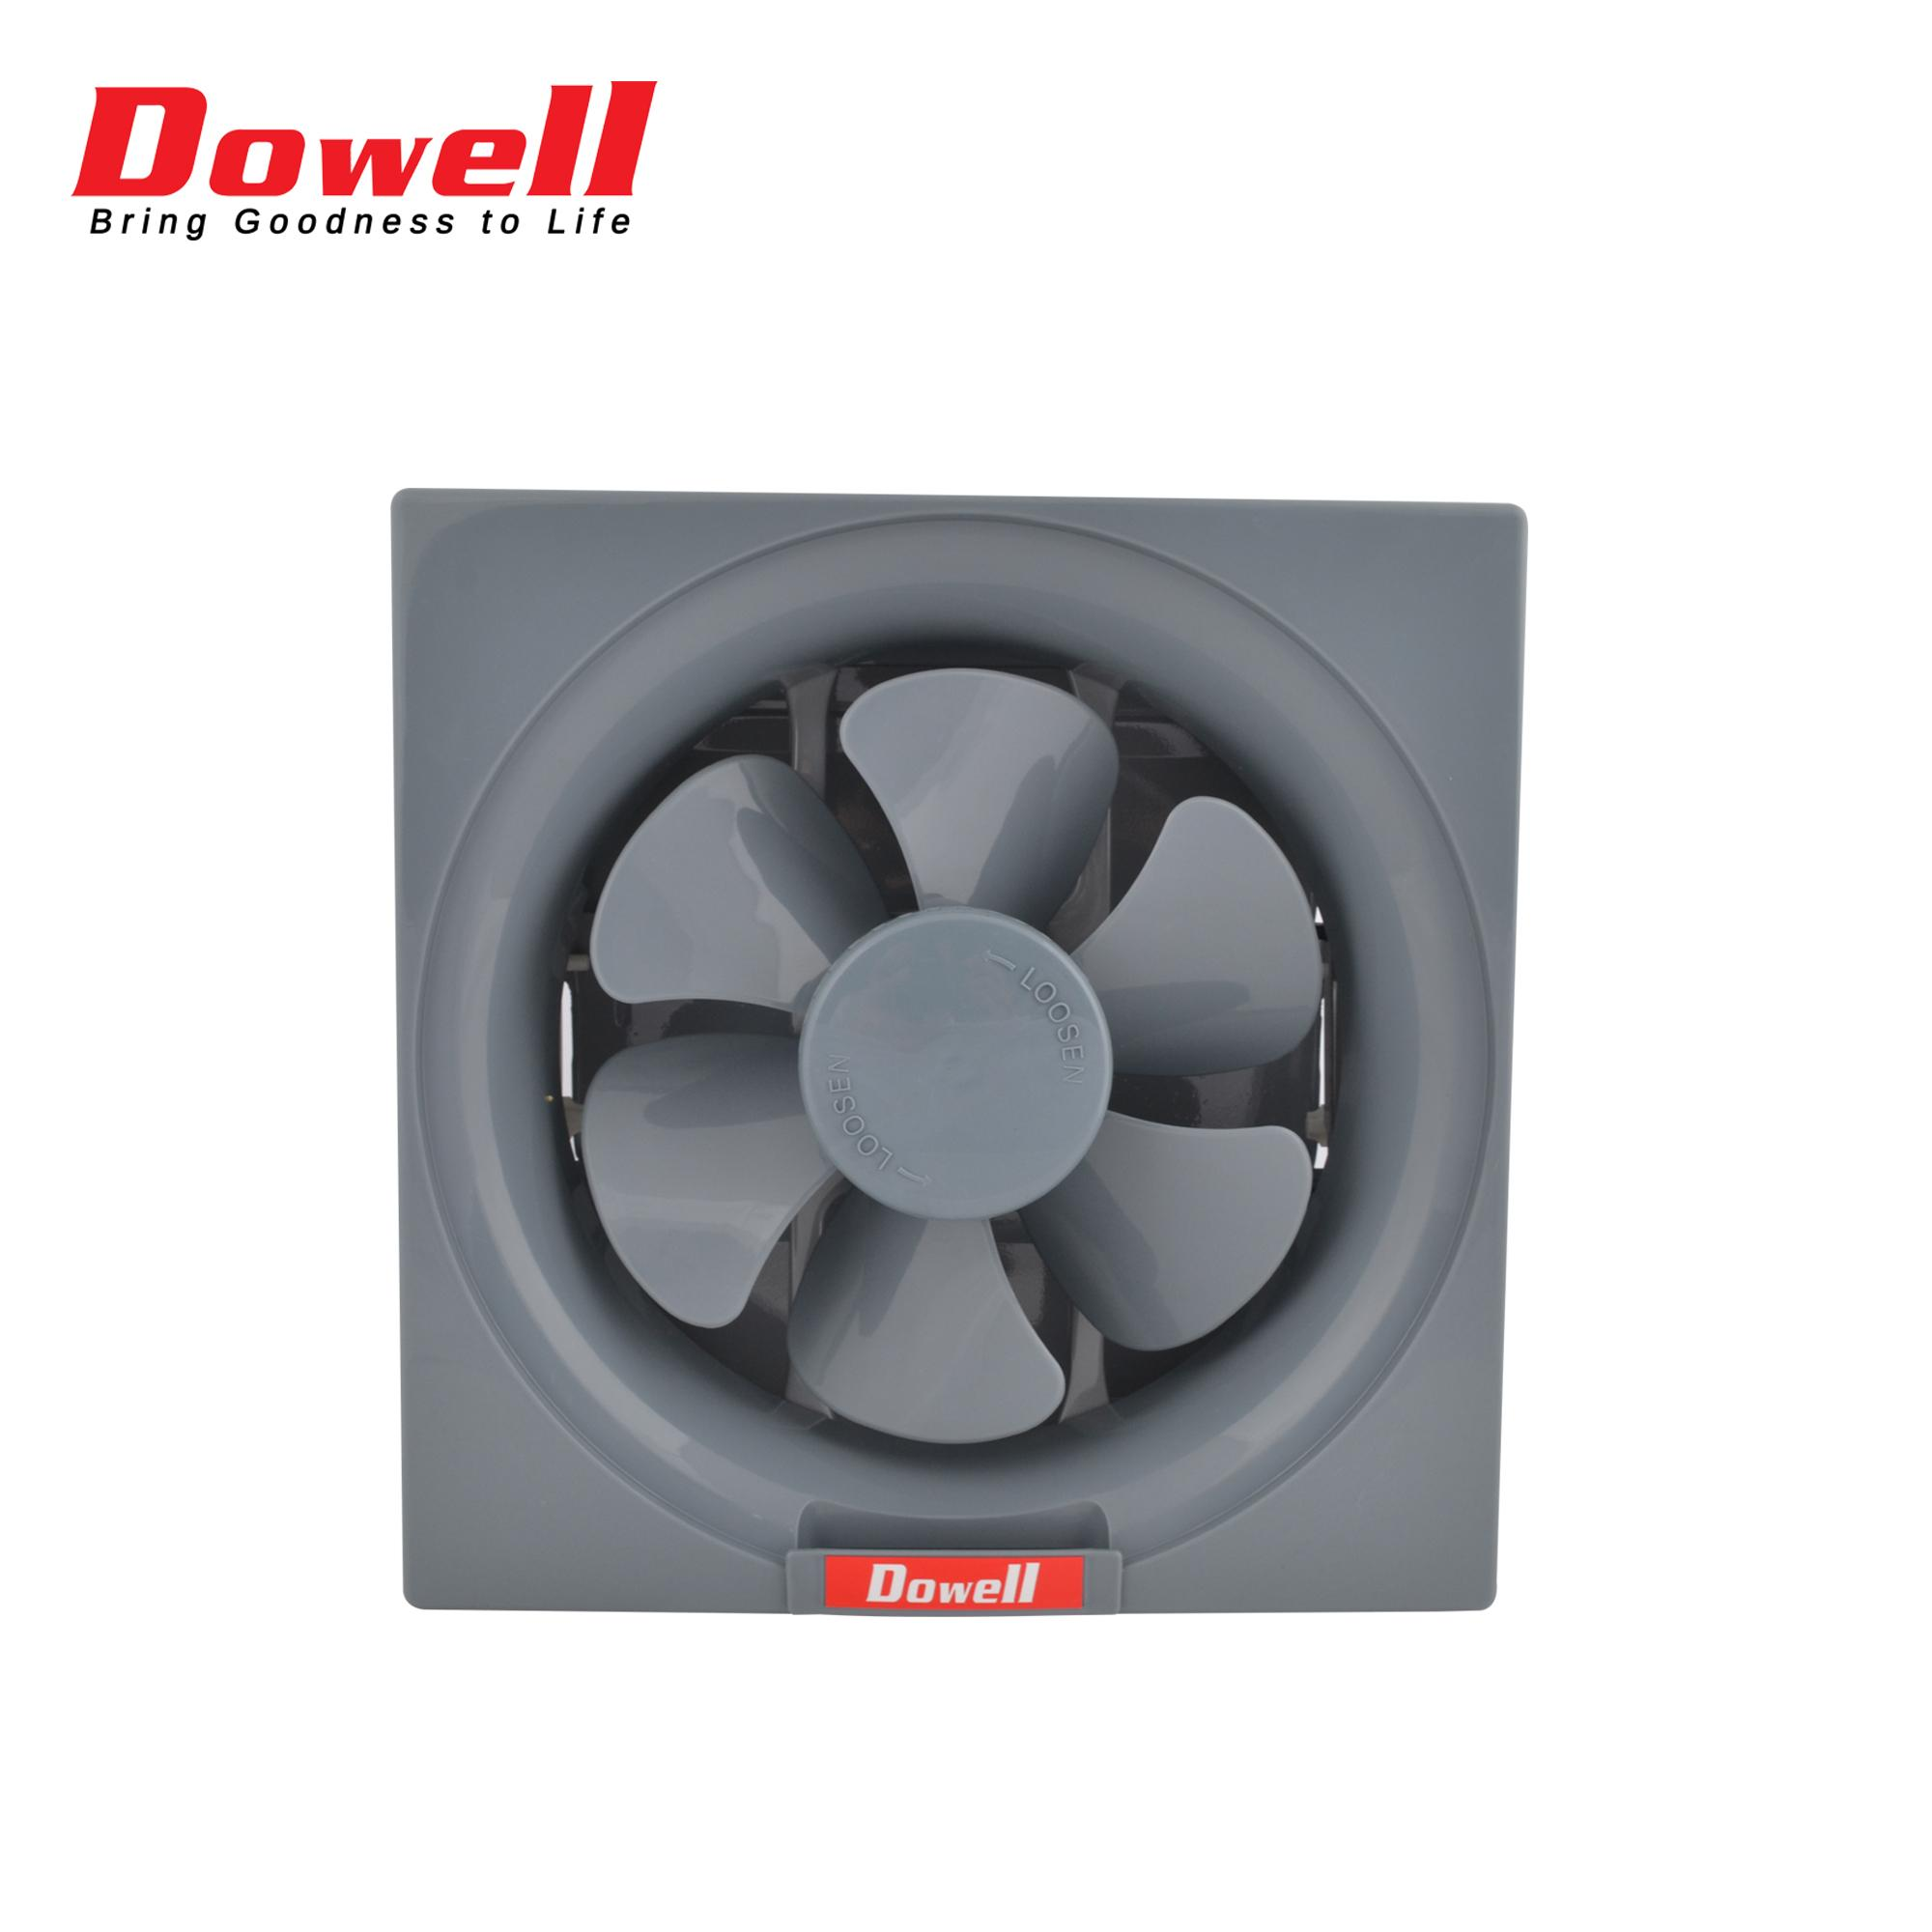 hight resolution of dowell exf 06 6 wall mounted exhaust fan